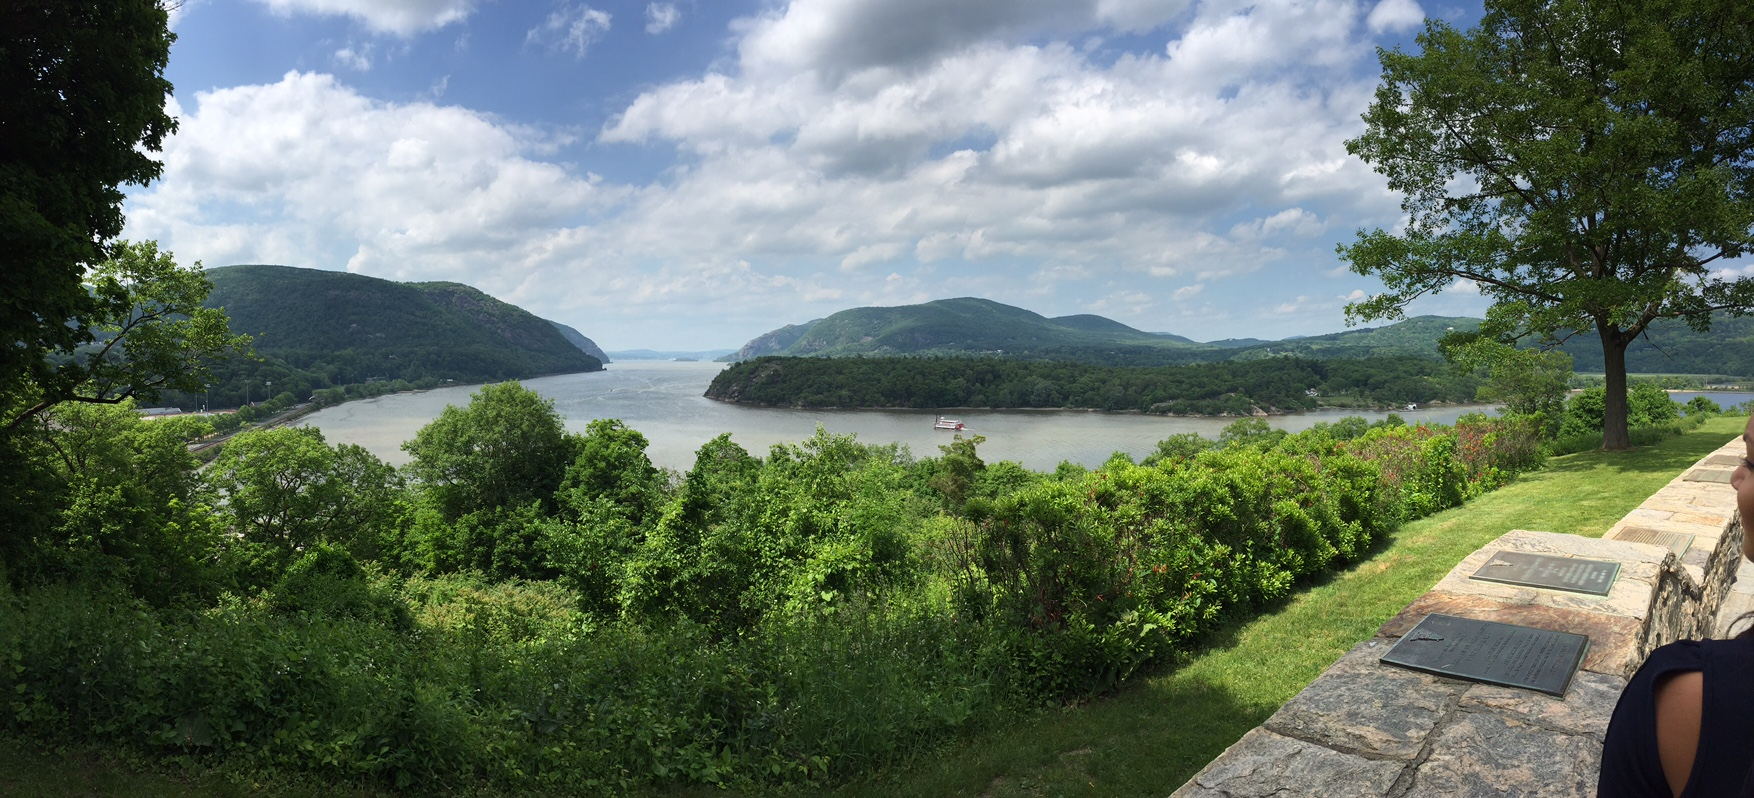 I shot this on my iPhone6 using its panorama functionality! I think it came out GREAT!